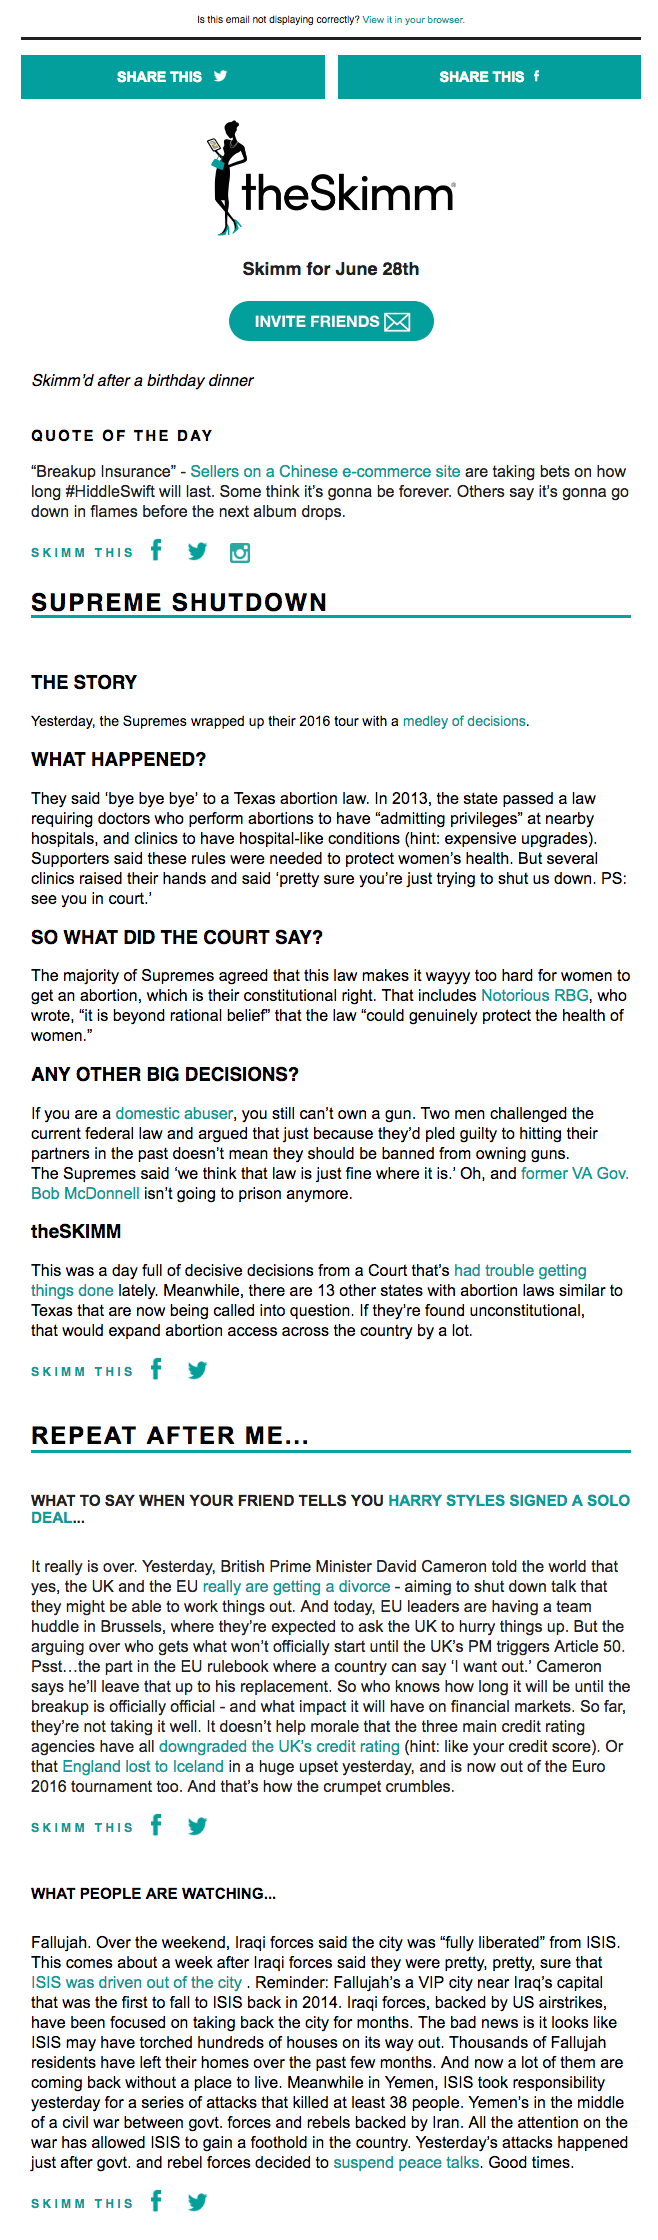 the-skimm-newsletter-example-1.png